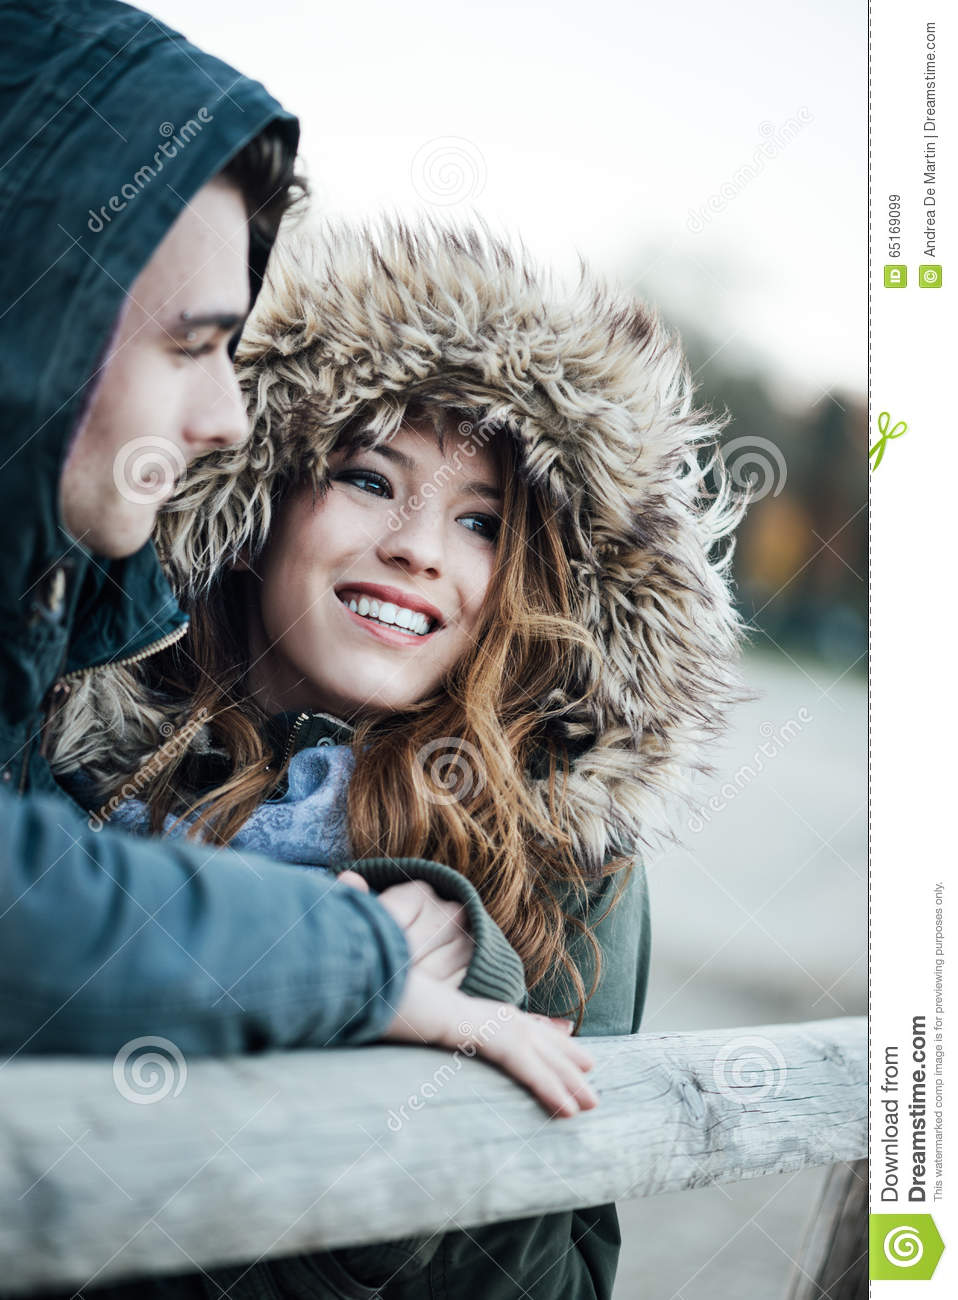 dating cold relationship Sometimes i wonder if hot and cold (men) are reacting to my behavior for example, i have this one male friend he was always just a friend (i was in another relationship), but after that relationship ended, soon after he really seemed to come on to me and it almost felt like we were dating.